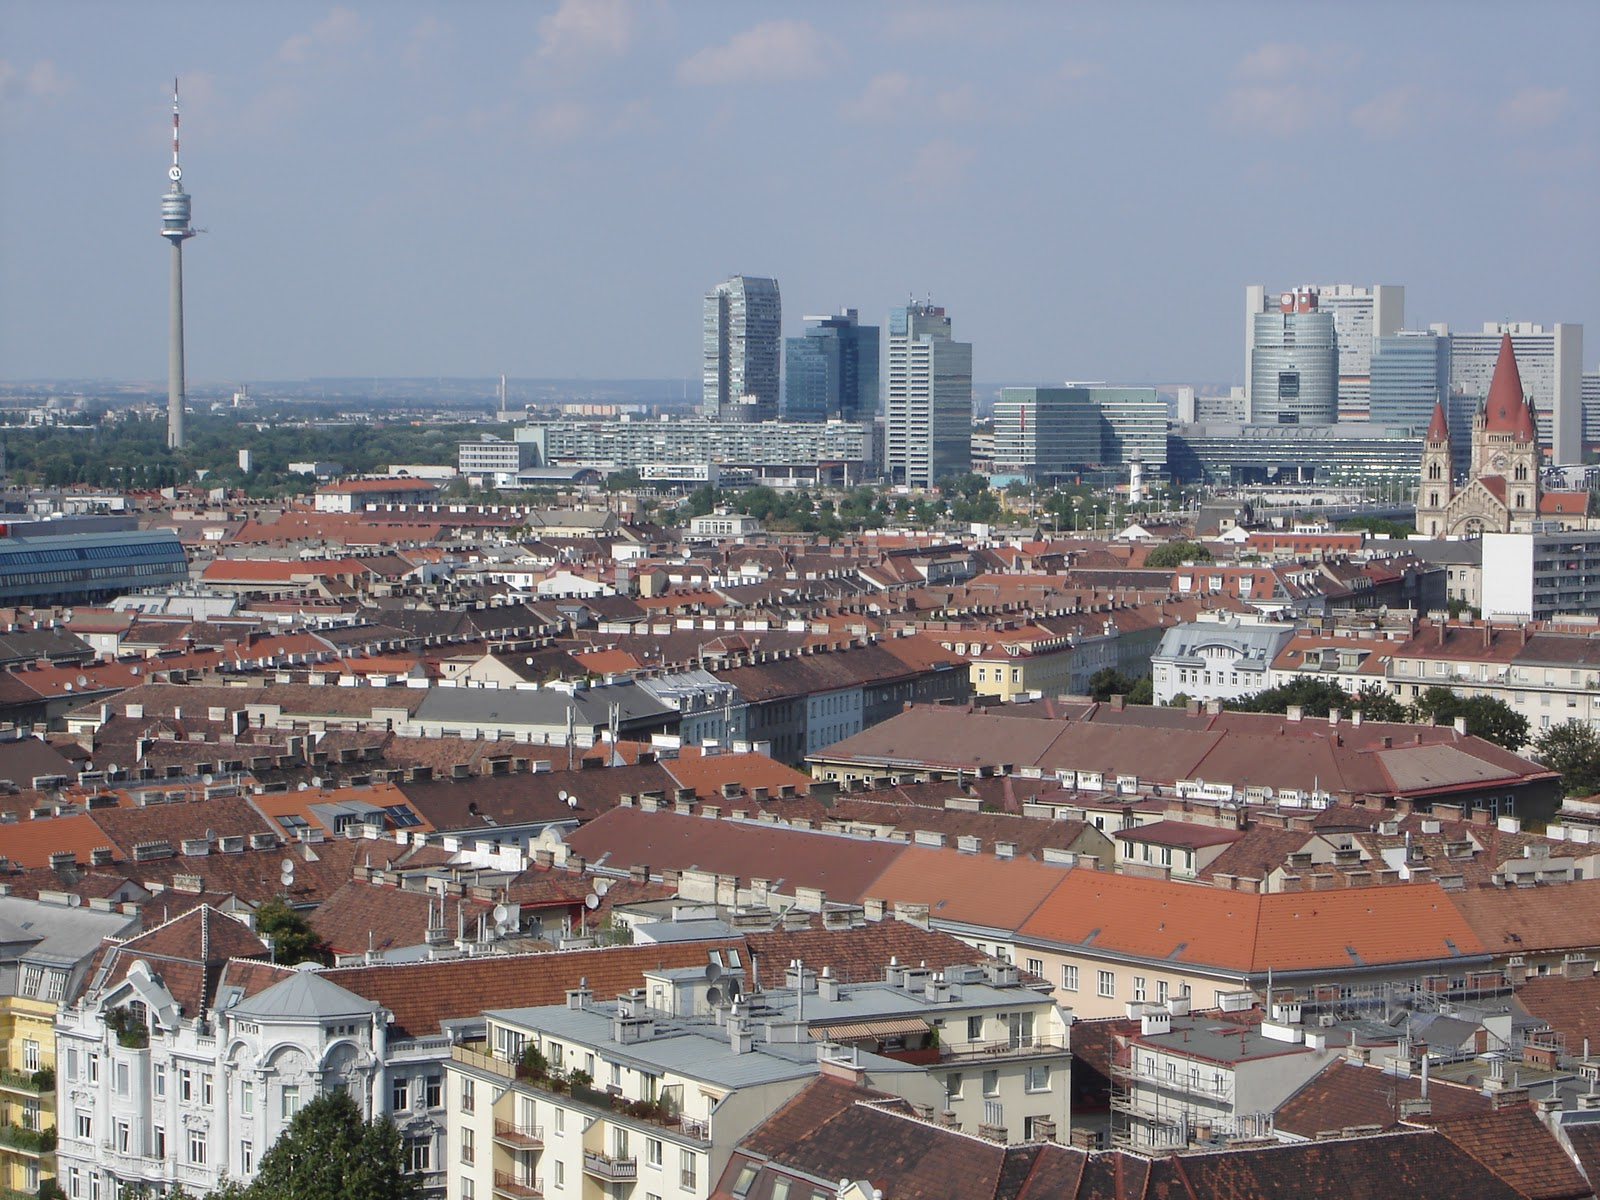 Vienna Austria  city photos gallery : Urban Research: Skyline photos of Vienna, Austria 1